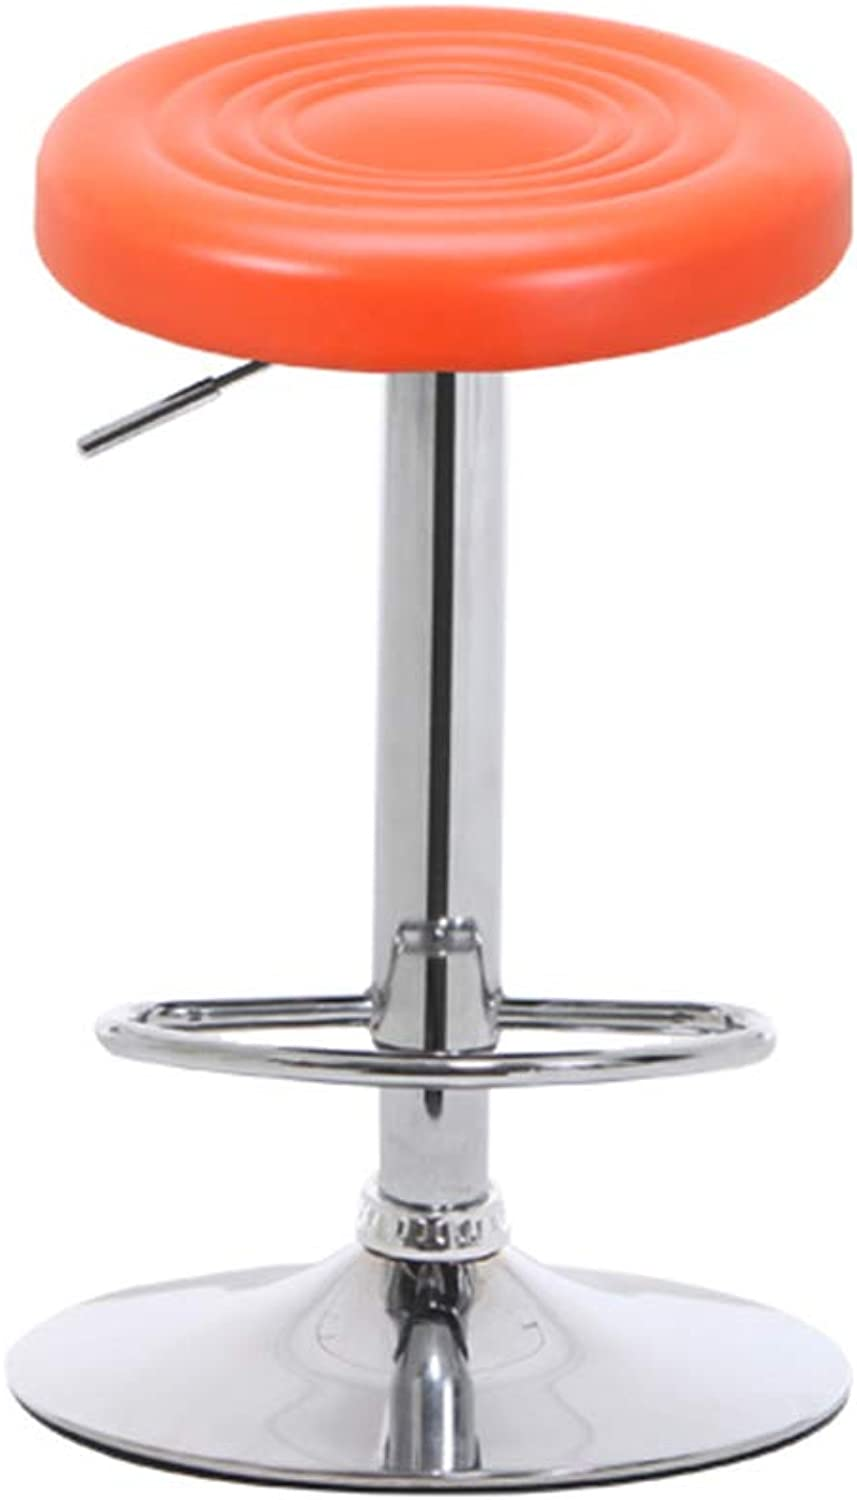 Fashion Bar Stool 360° redating Height Adjustable Flexible Swivel Task Chair with Adjustable Height and Soft Sponge Cushion